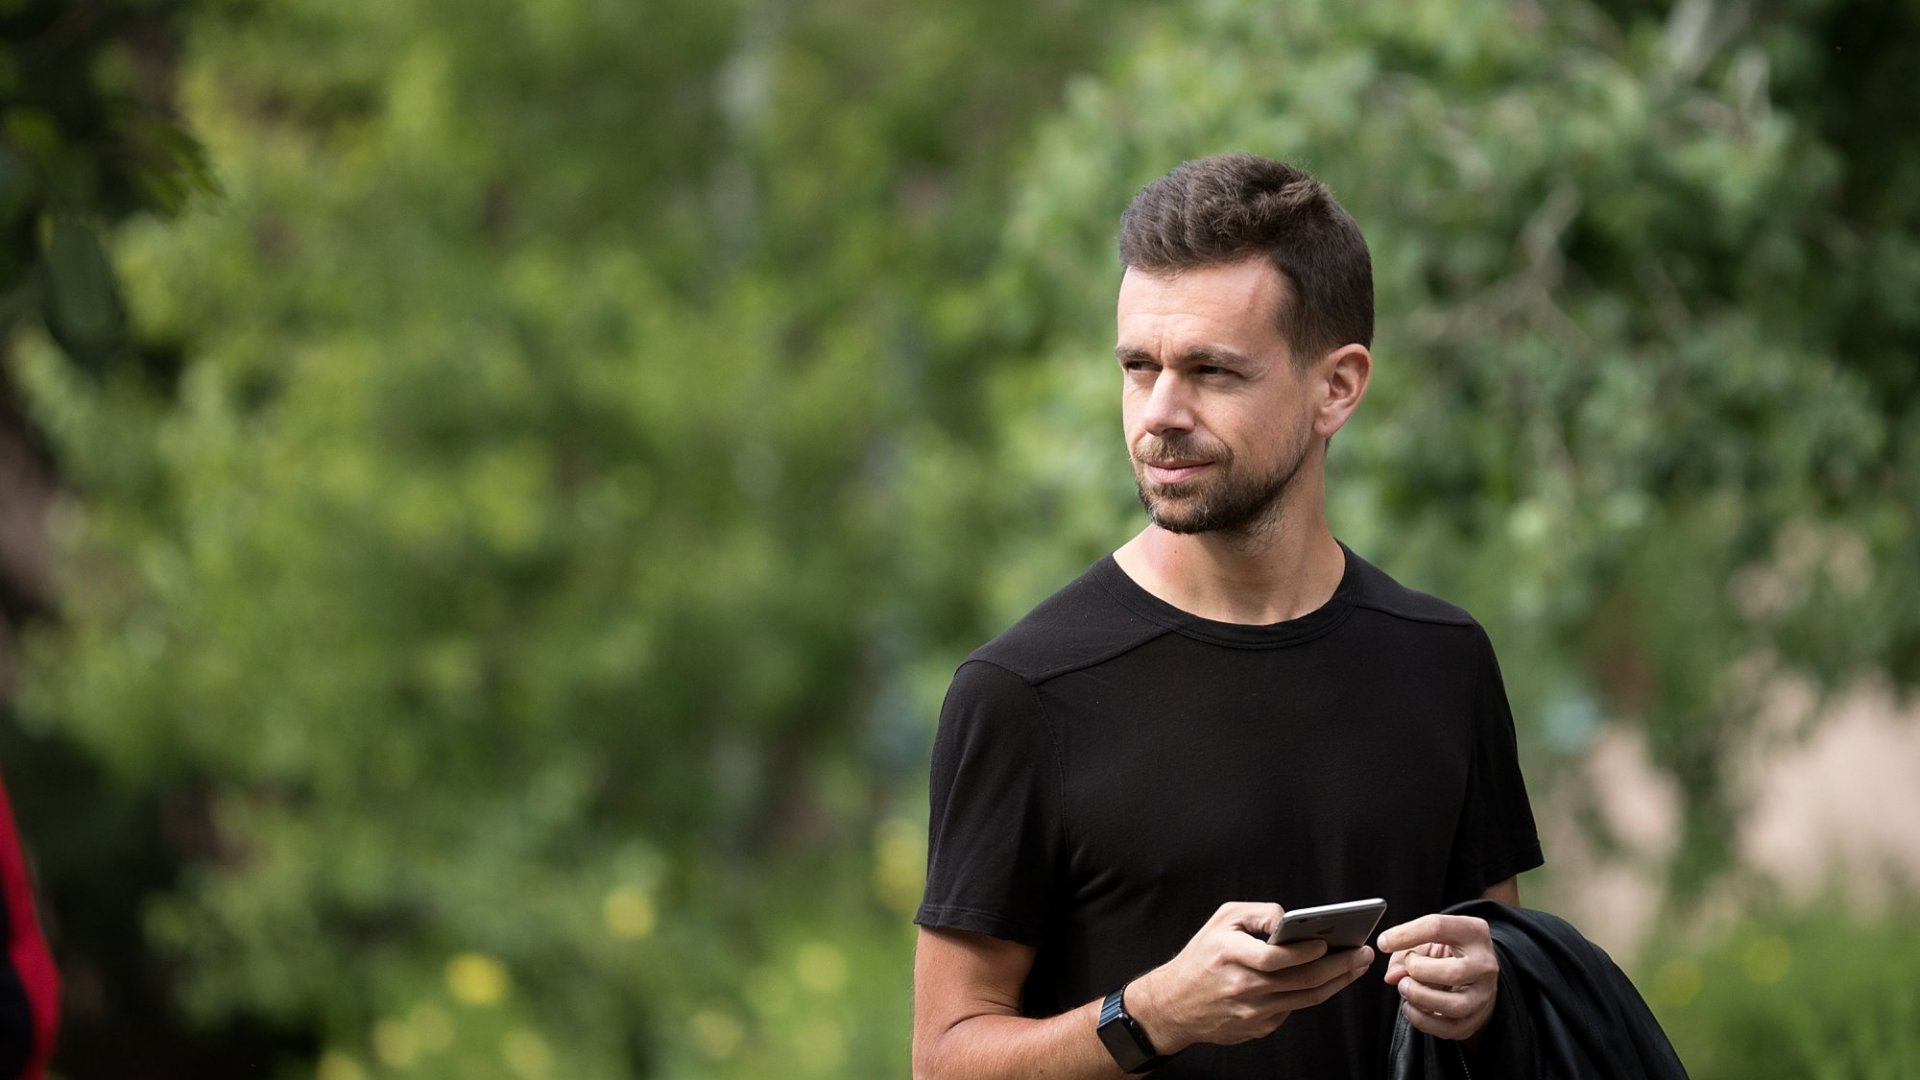 Jack Dorsey Doesn't Own a Computer. For Peak Productivity and Focus, He Only Uses an iPhone